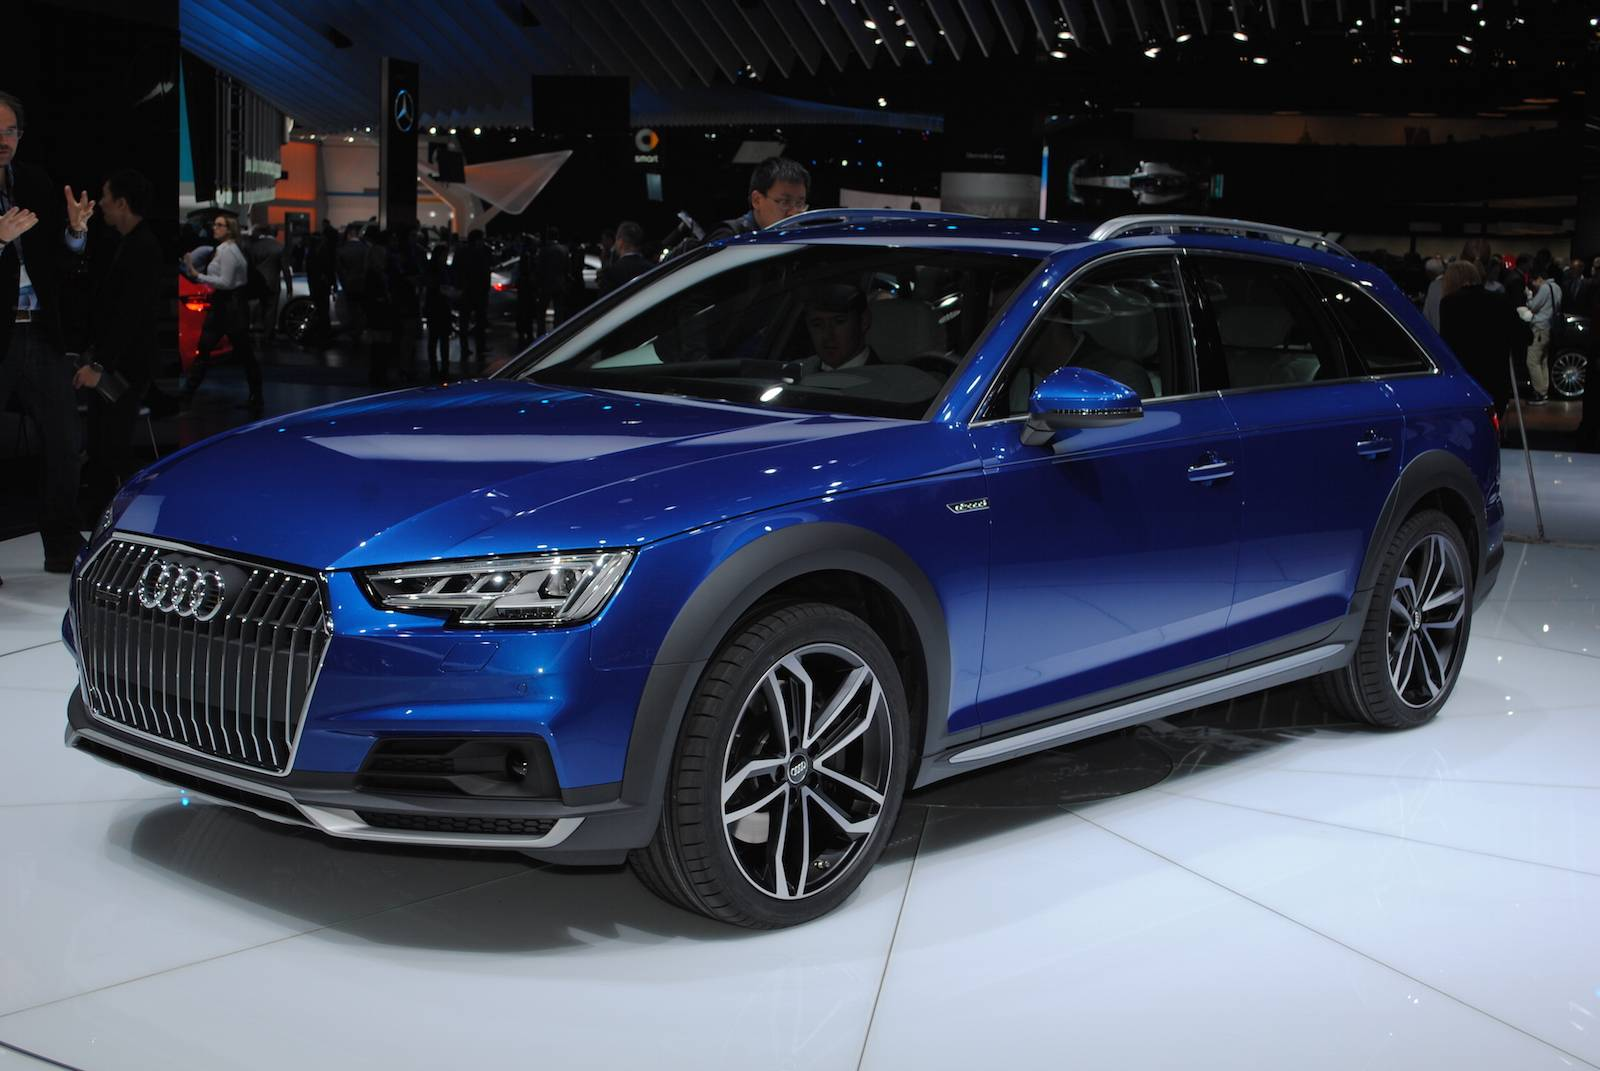 2016 Audi Allroad Blue 200 Interior And Exterior Images